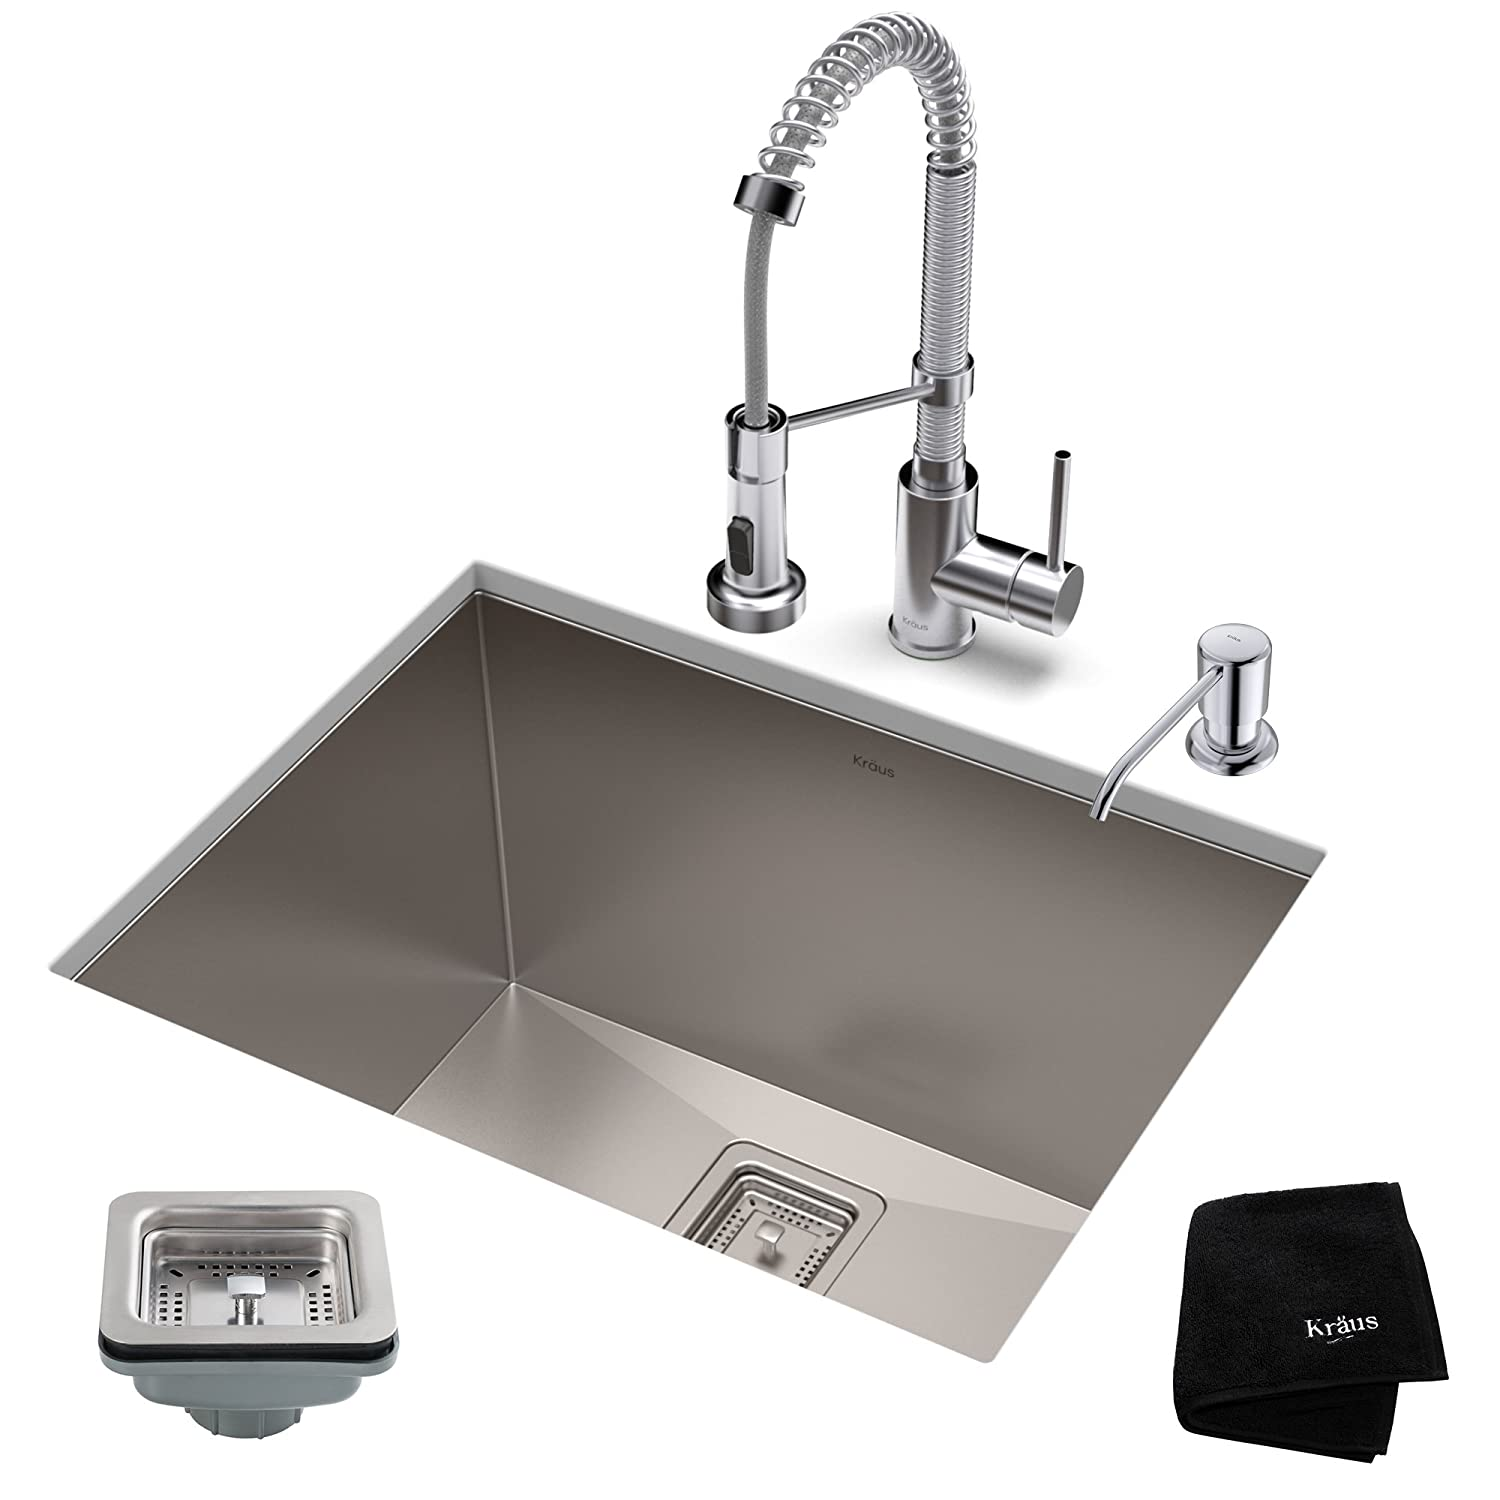 KRAUS KHU24L-1610-53CH Set with Pax Stainless Steel Laundry Utility Sink and Bolden Commercial Pull Faucet in Chrome Kitchen Sink & Faucet Combo